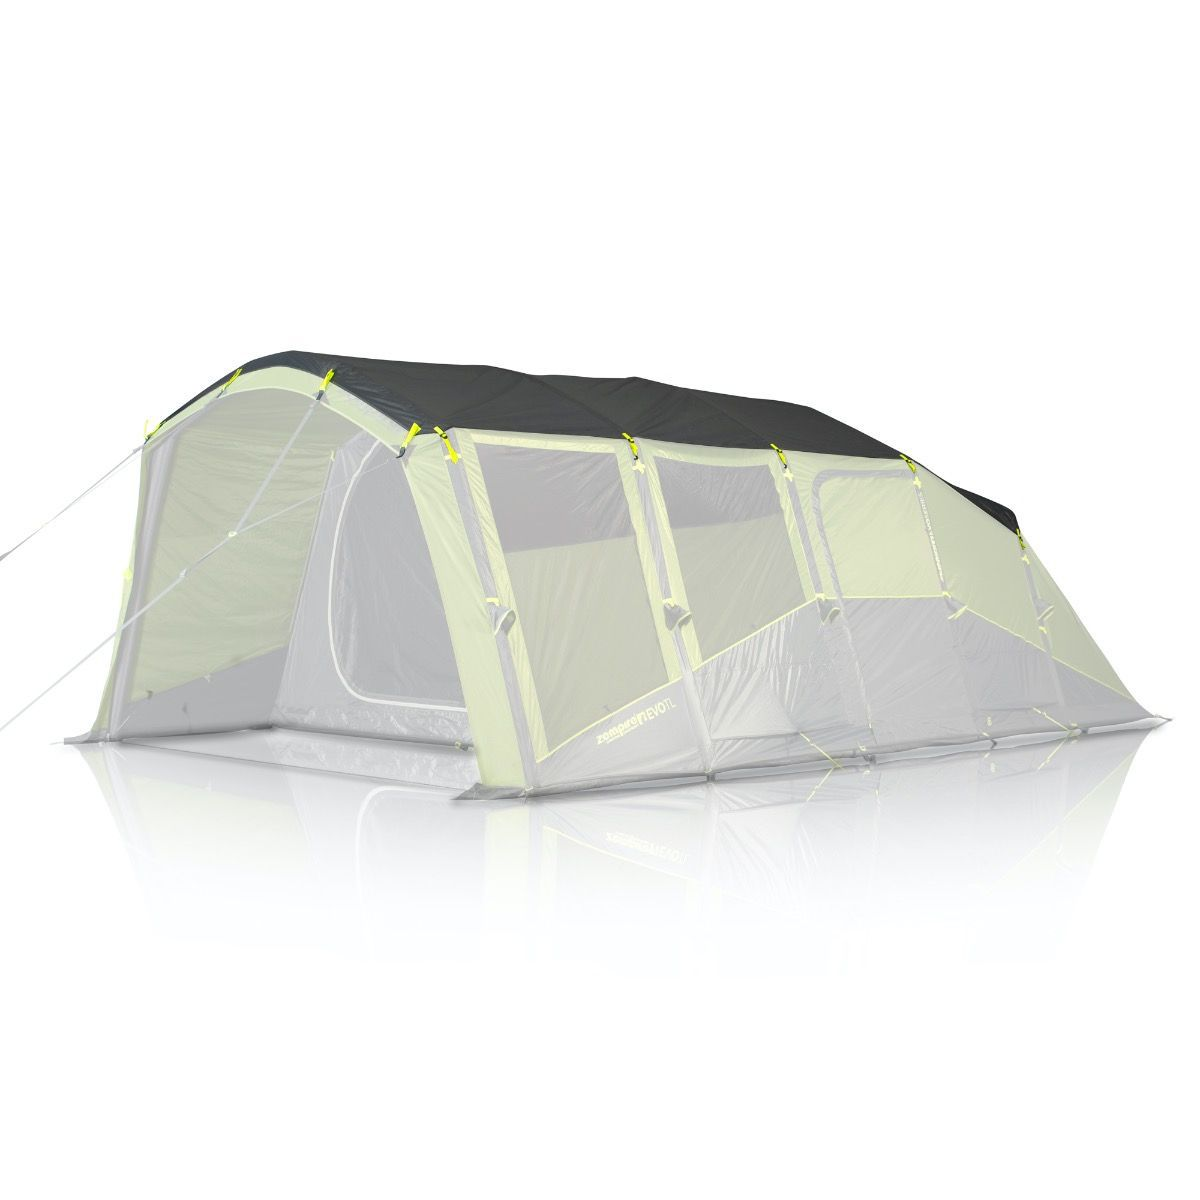 Zempire Tl Roof Cover